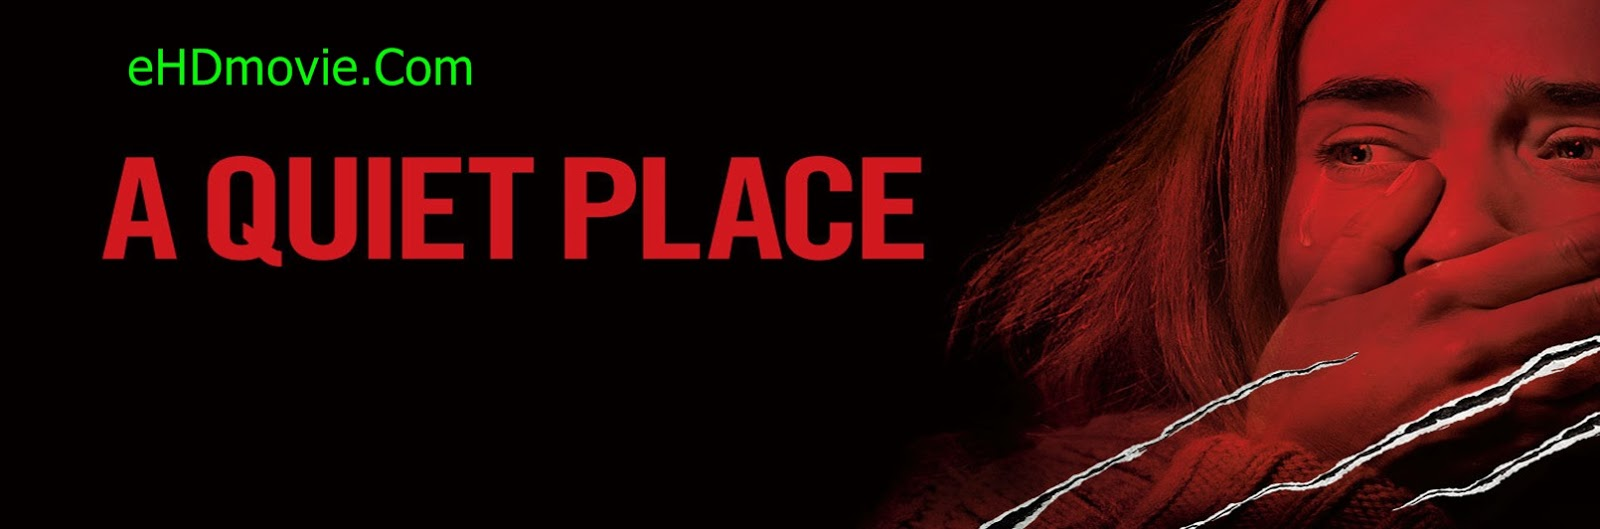 A Quiet Place 2018 Full Movie Dual Audio [Hindi – English] 1080p - 720p - HEVC - 480p ORG BRRip 300MB - 450MB - 1GB - 1.5GB ESubs Free Download